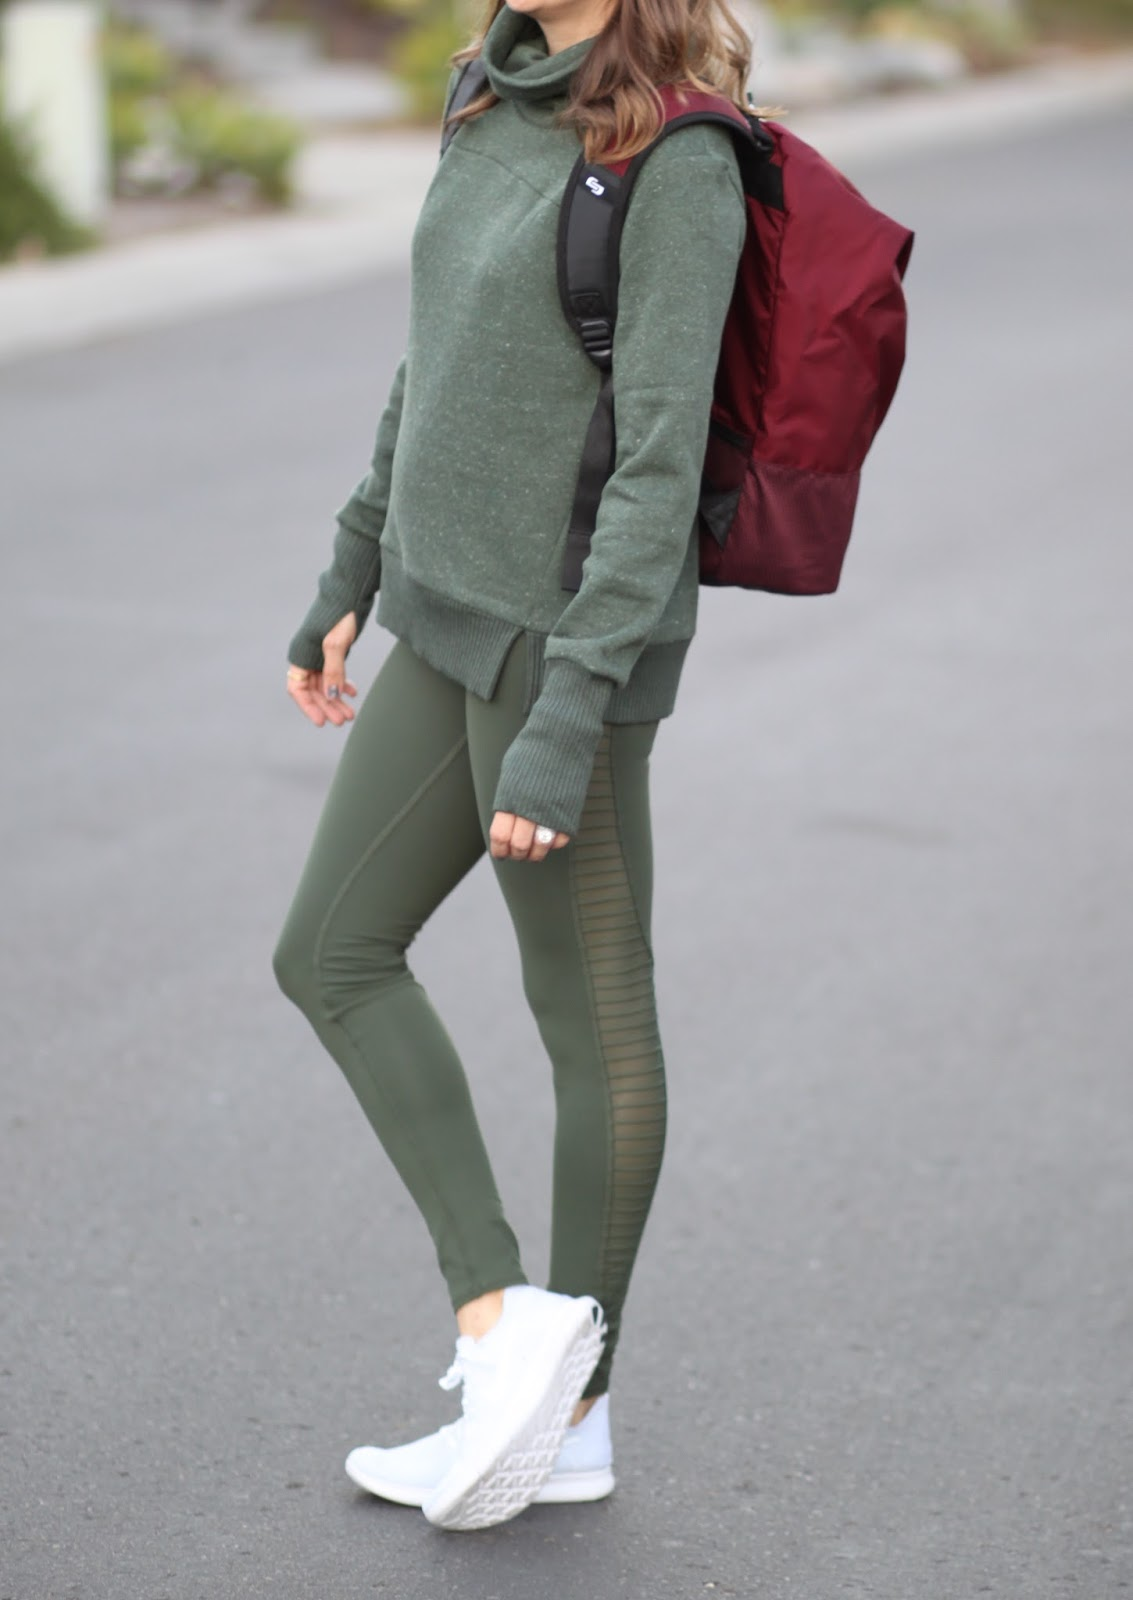 green moto leggings outfit